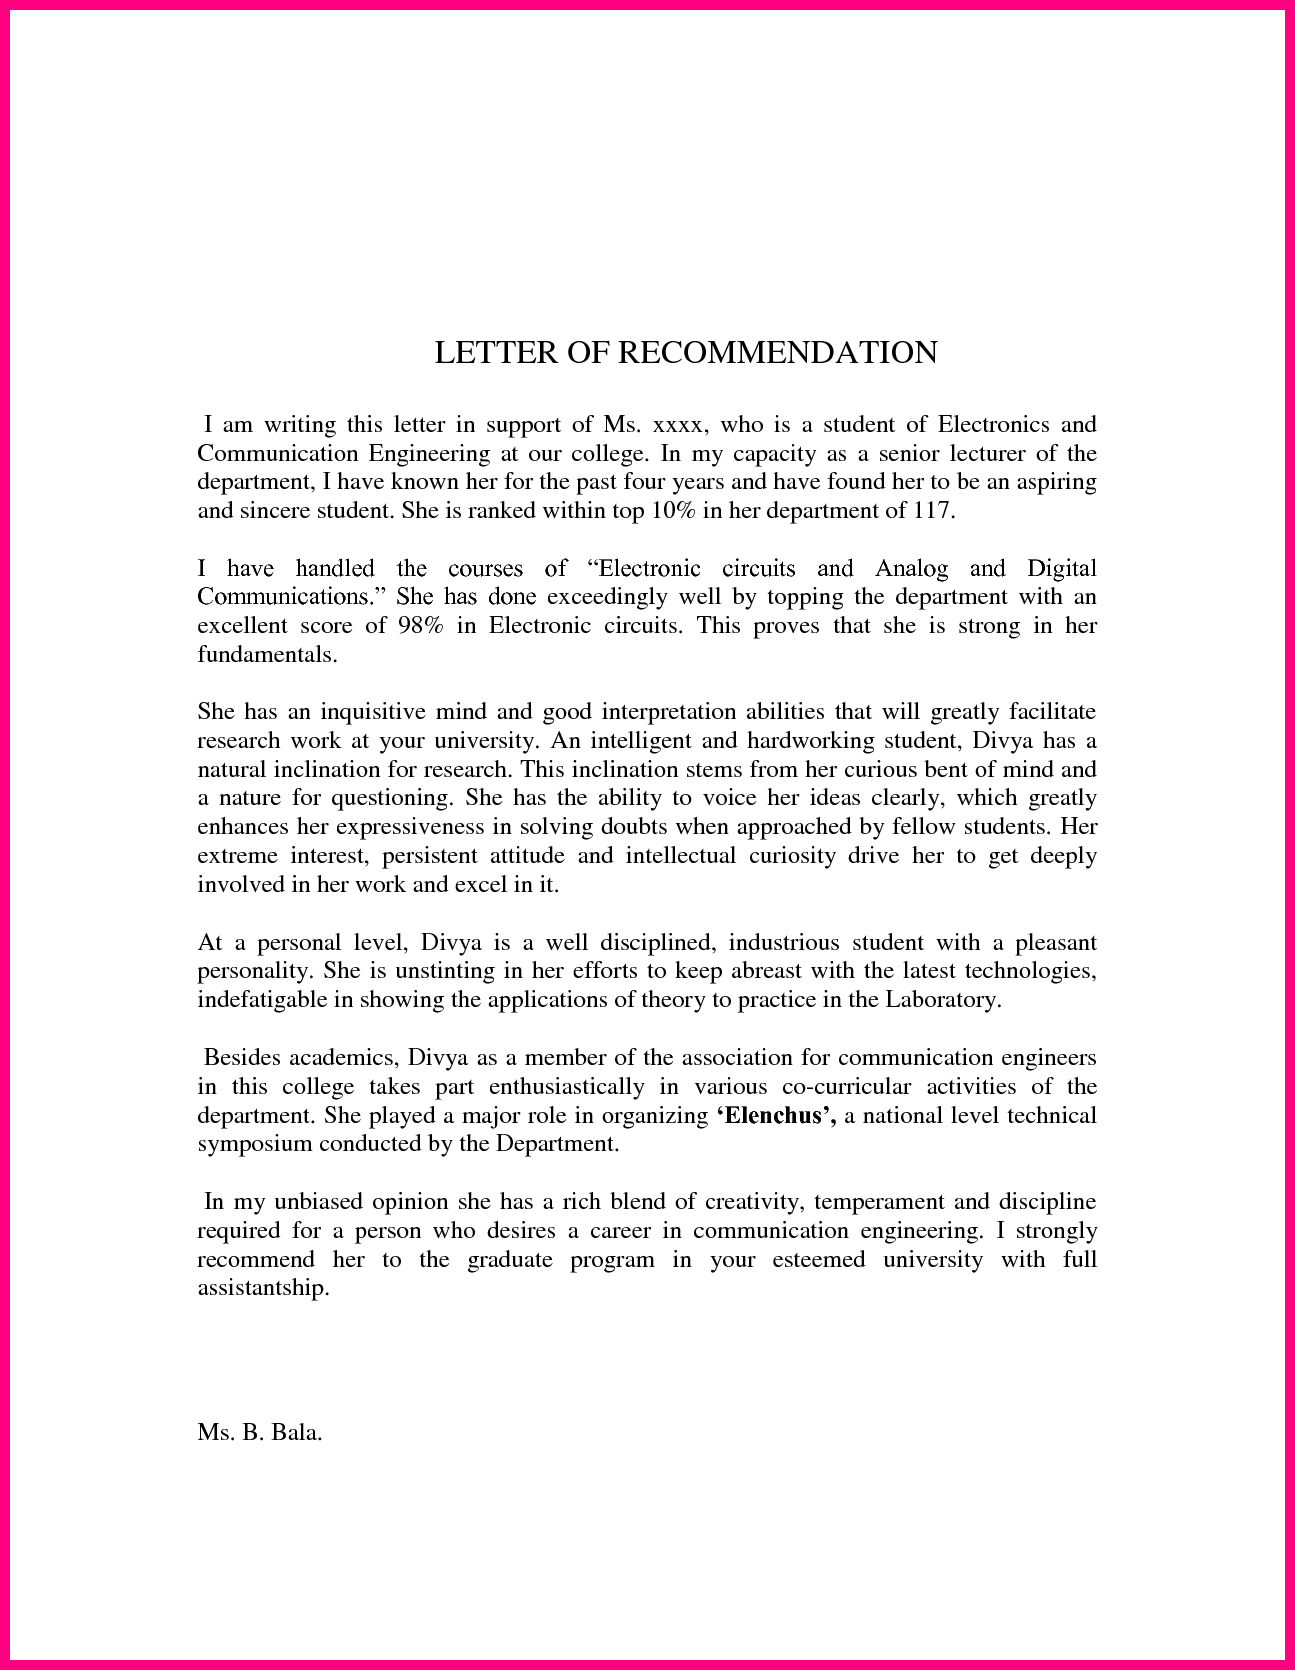 Letter Of Recommendation for Physical therapy School Template - How to Write A therapeutic Letter Choice Image Letter format